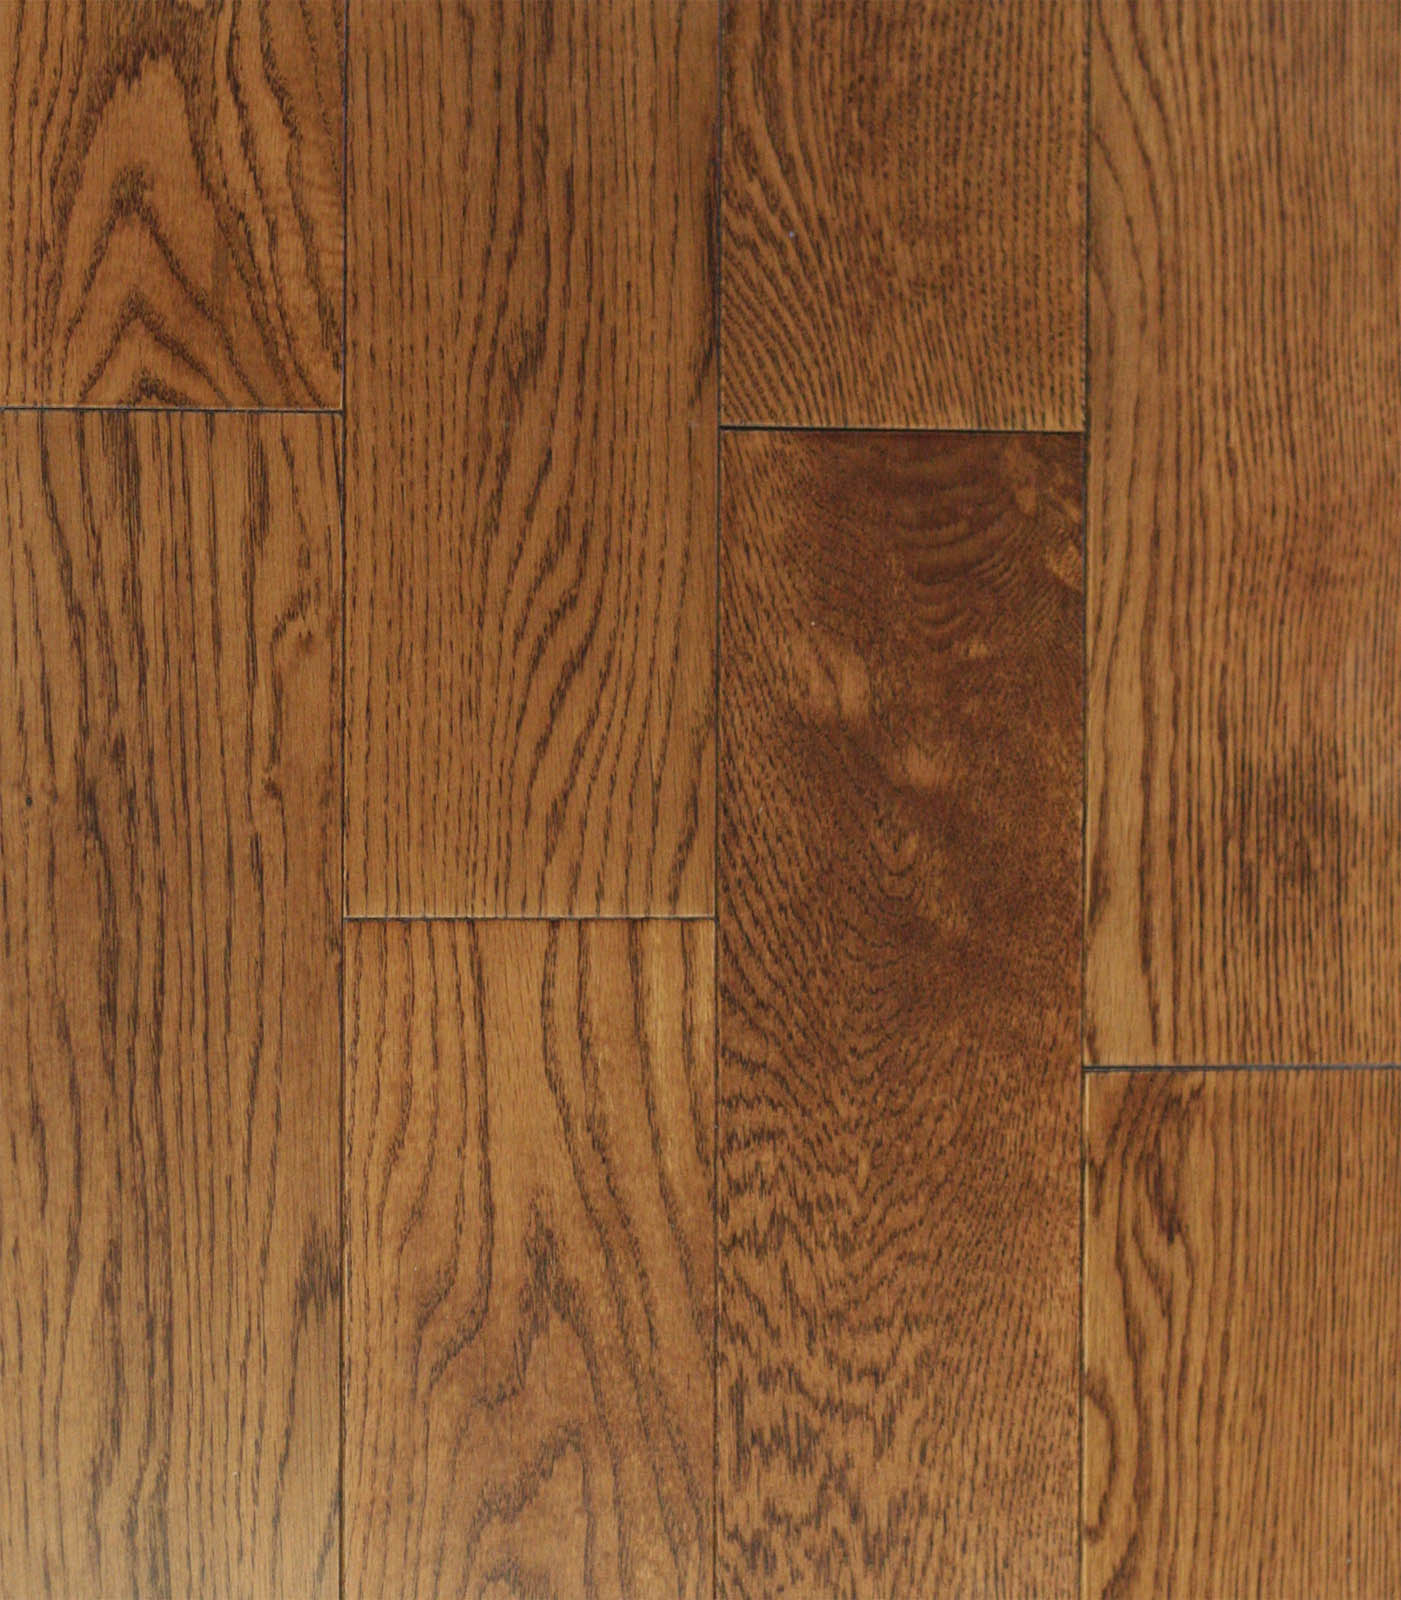 Download Patch Engineered Hardwood Floor Free